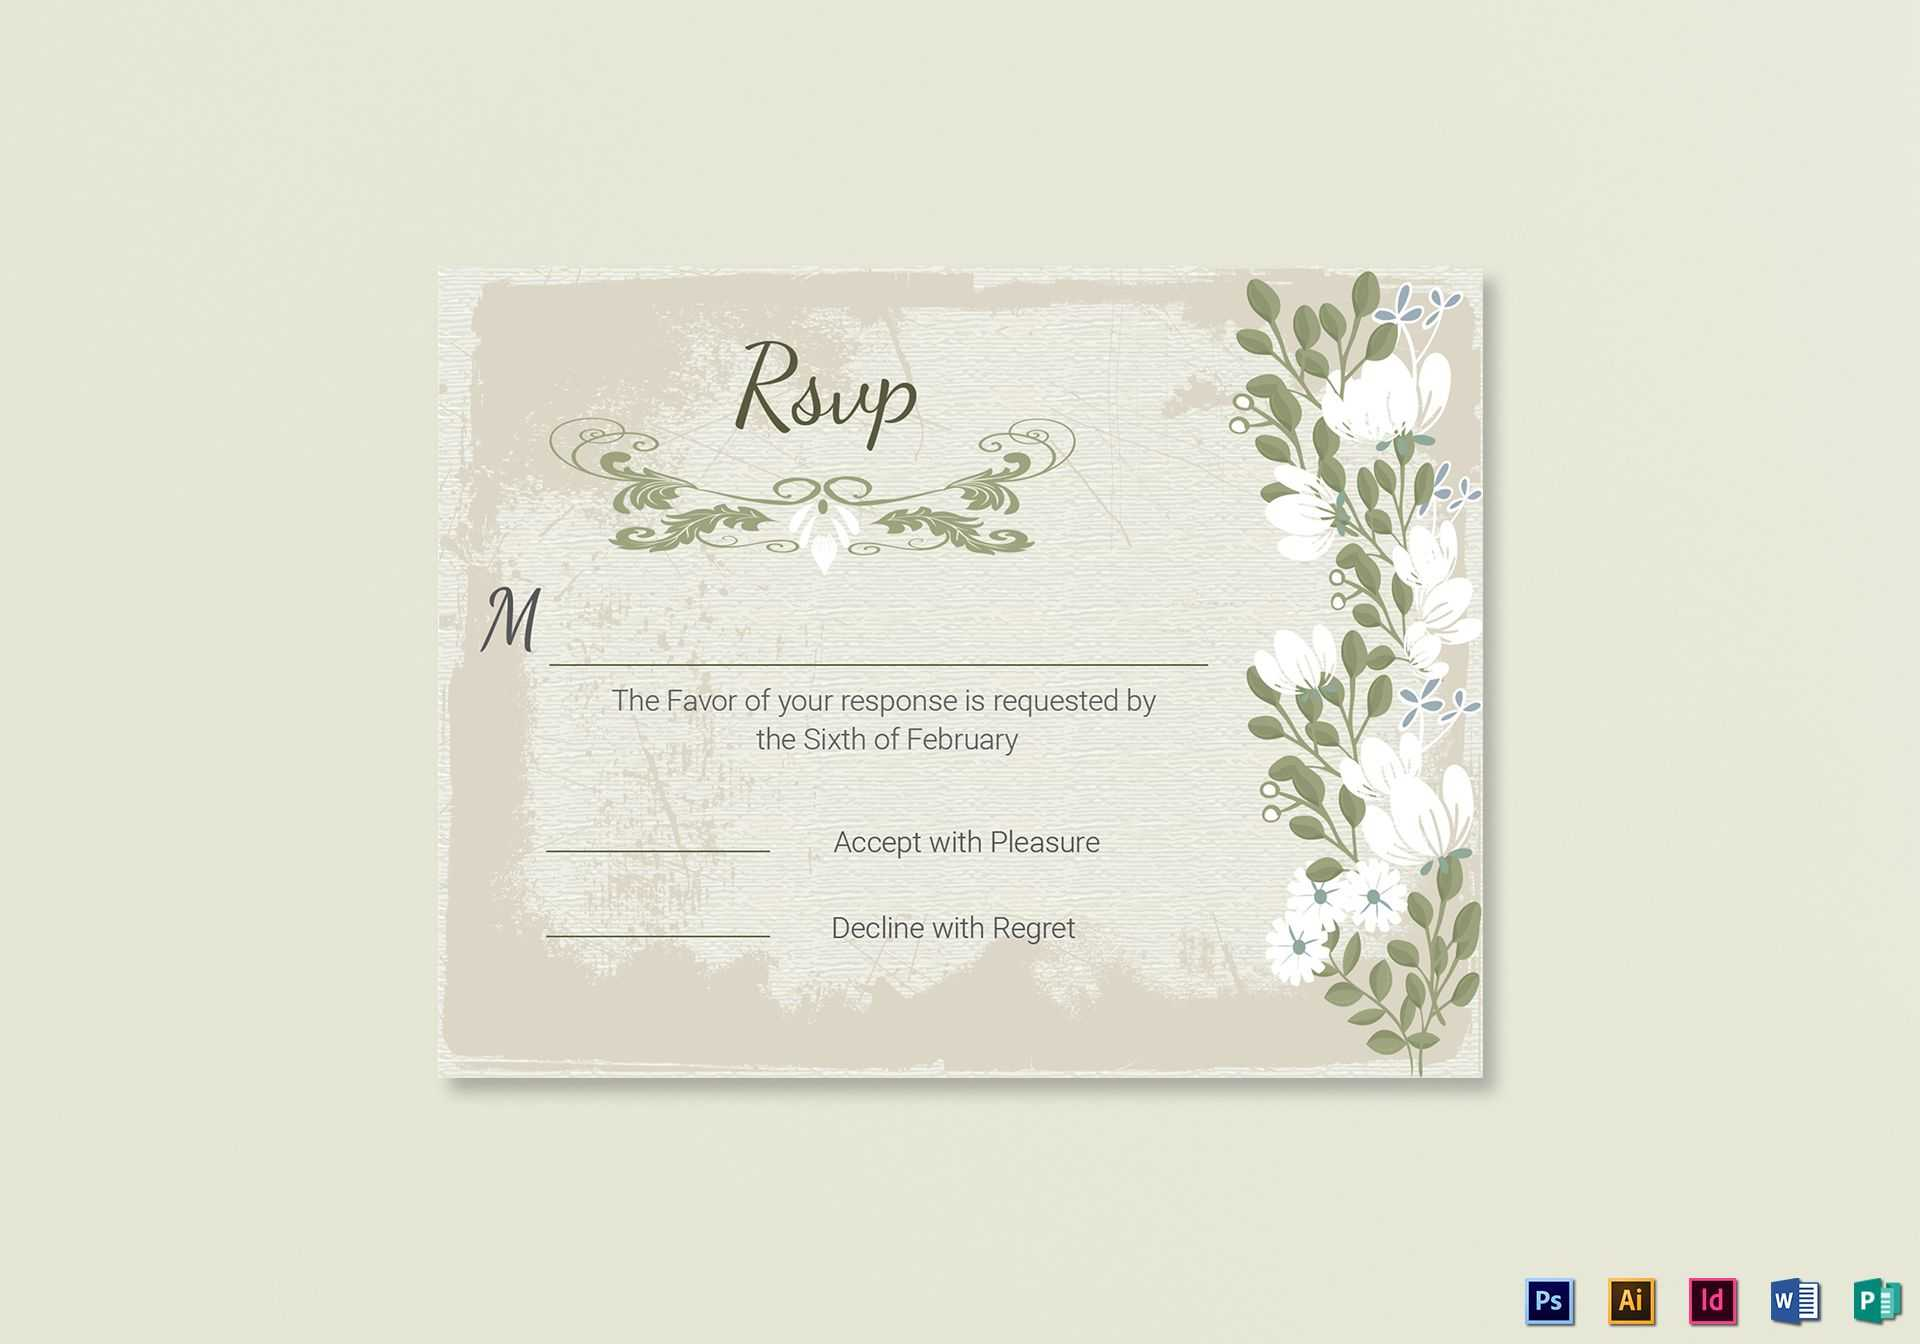 001 Template Ideas Wedding Rsvp Cards Incredible Templates Within Template For Rsvp Cards For Wedding